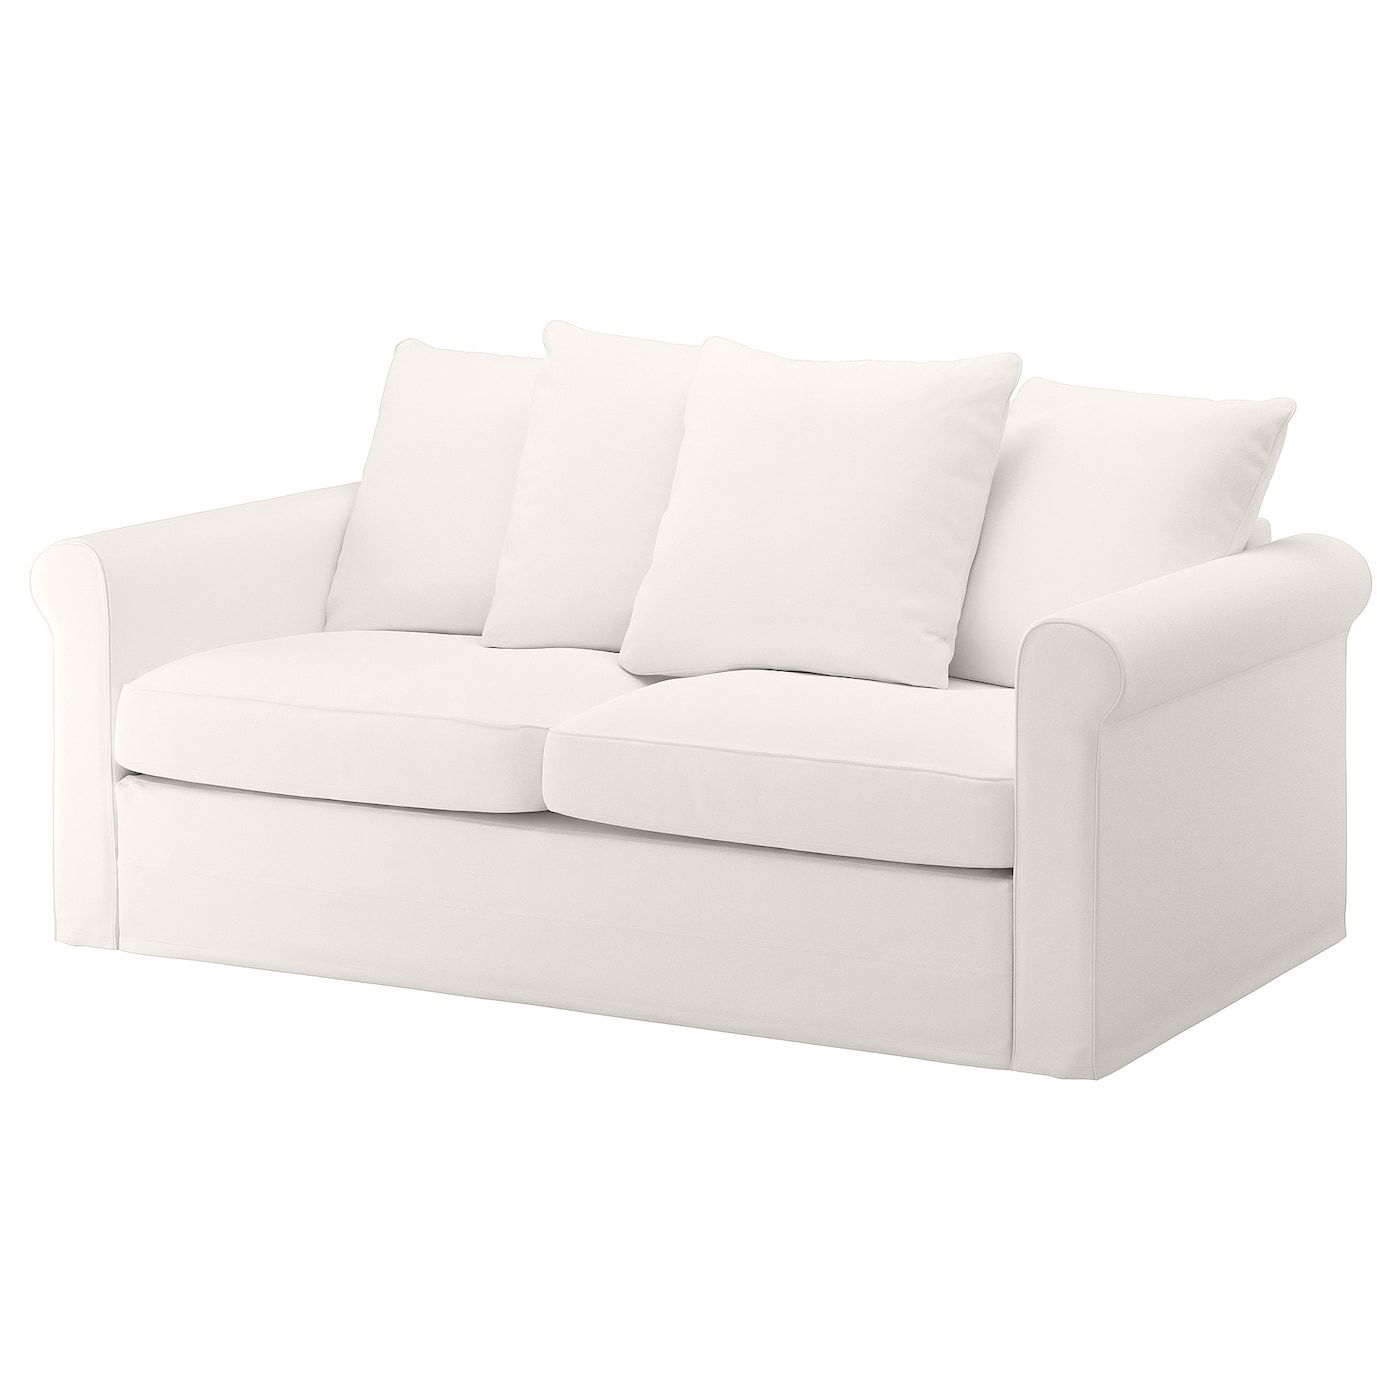 Ikea Us - Furniture And Home Furnishings | Sleeper Sofa ... dedans Canape 2 Place Convertble Style Coboy